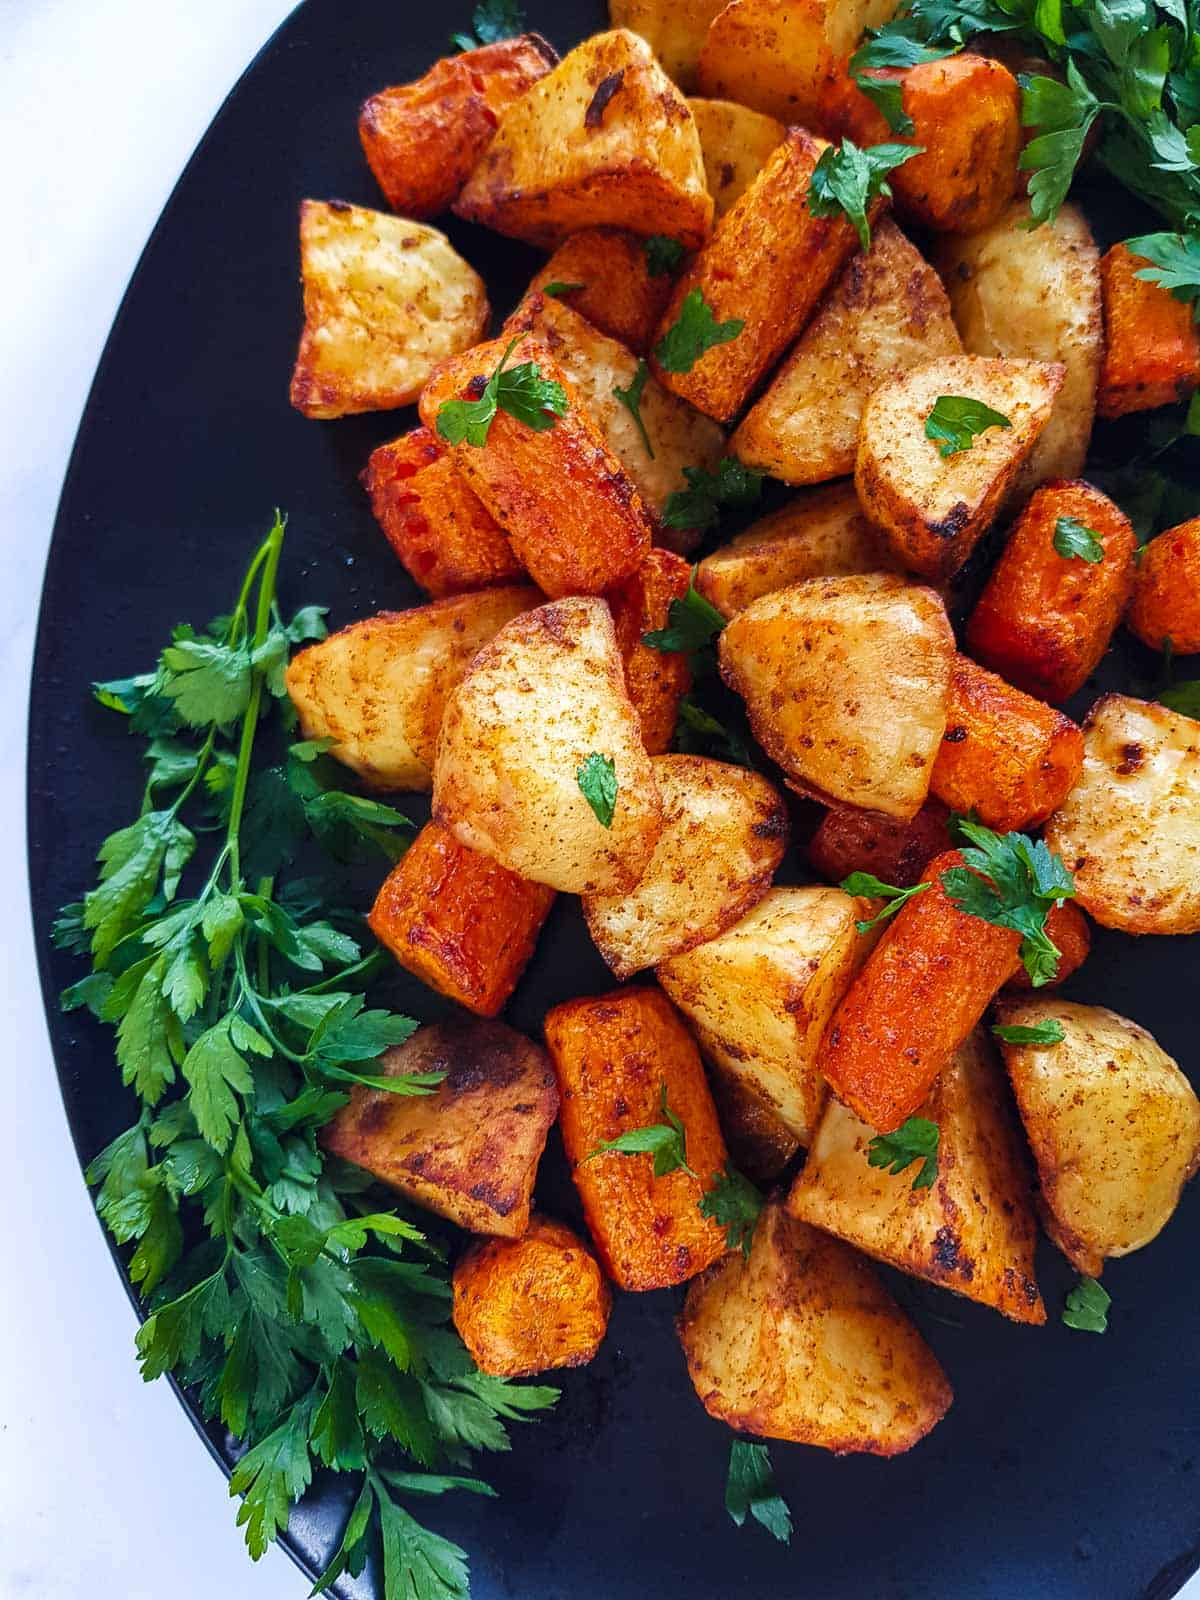 A close up of roasted potatoes and carrots.